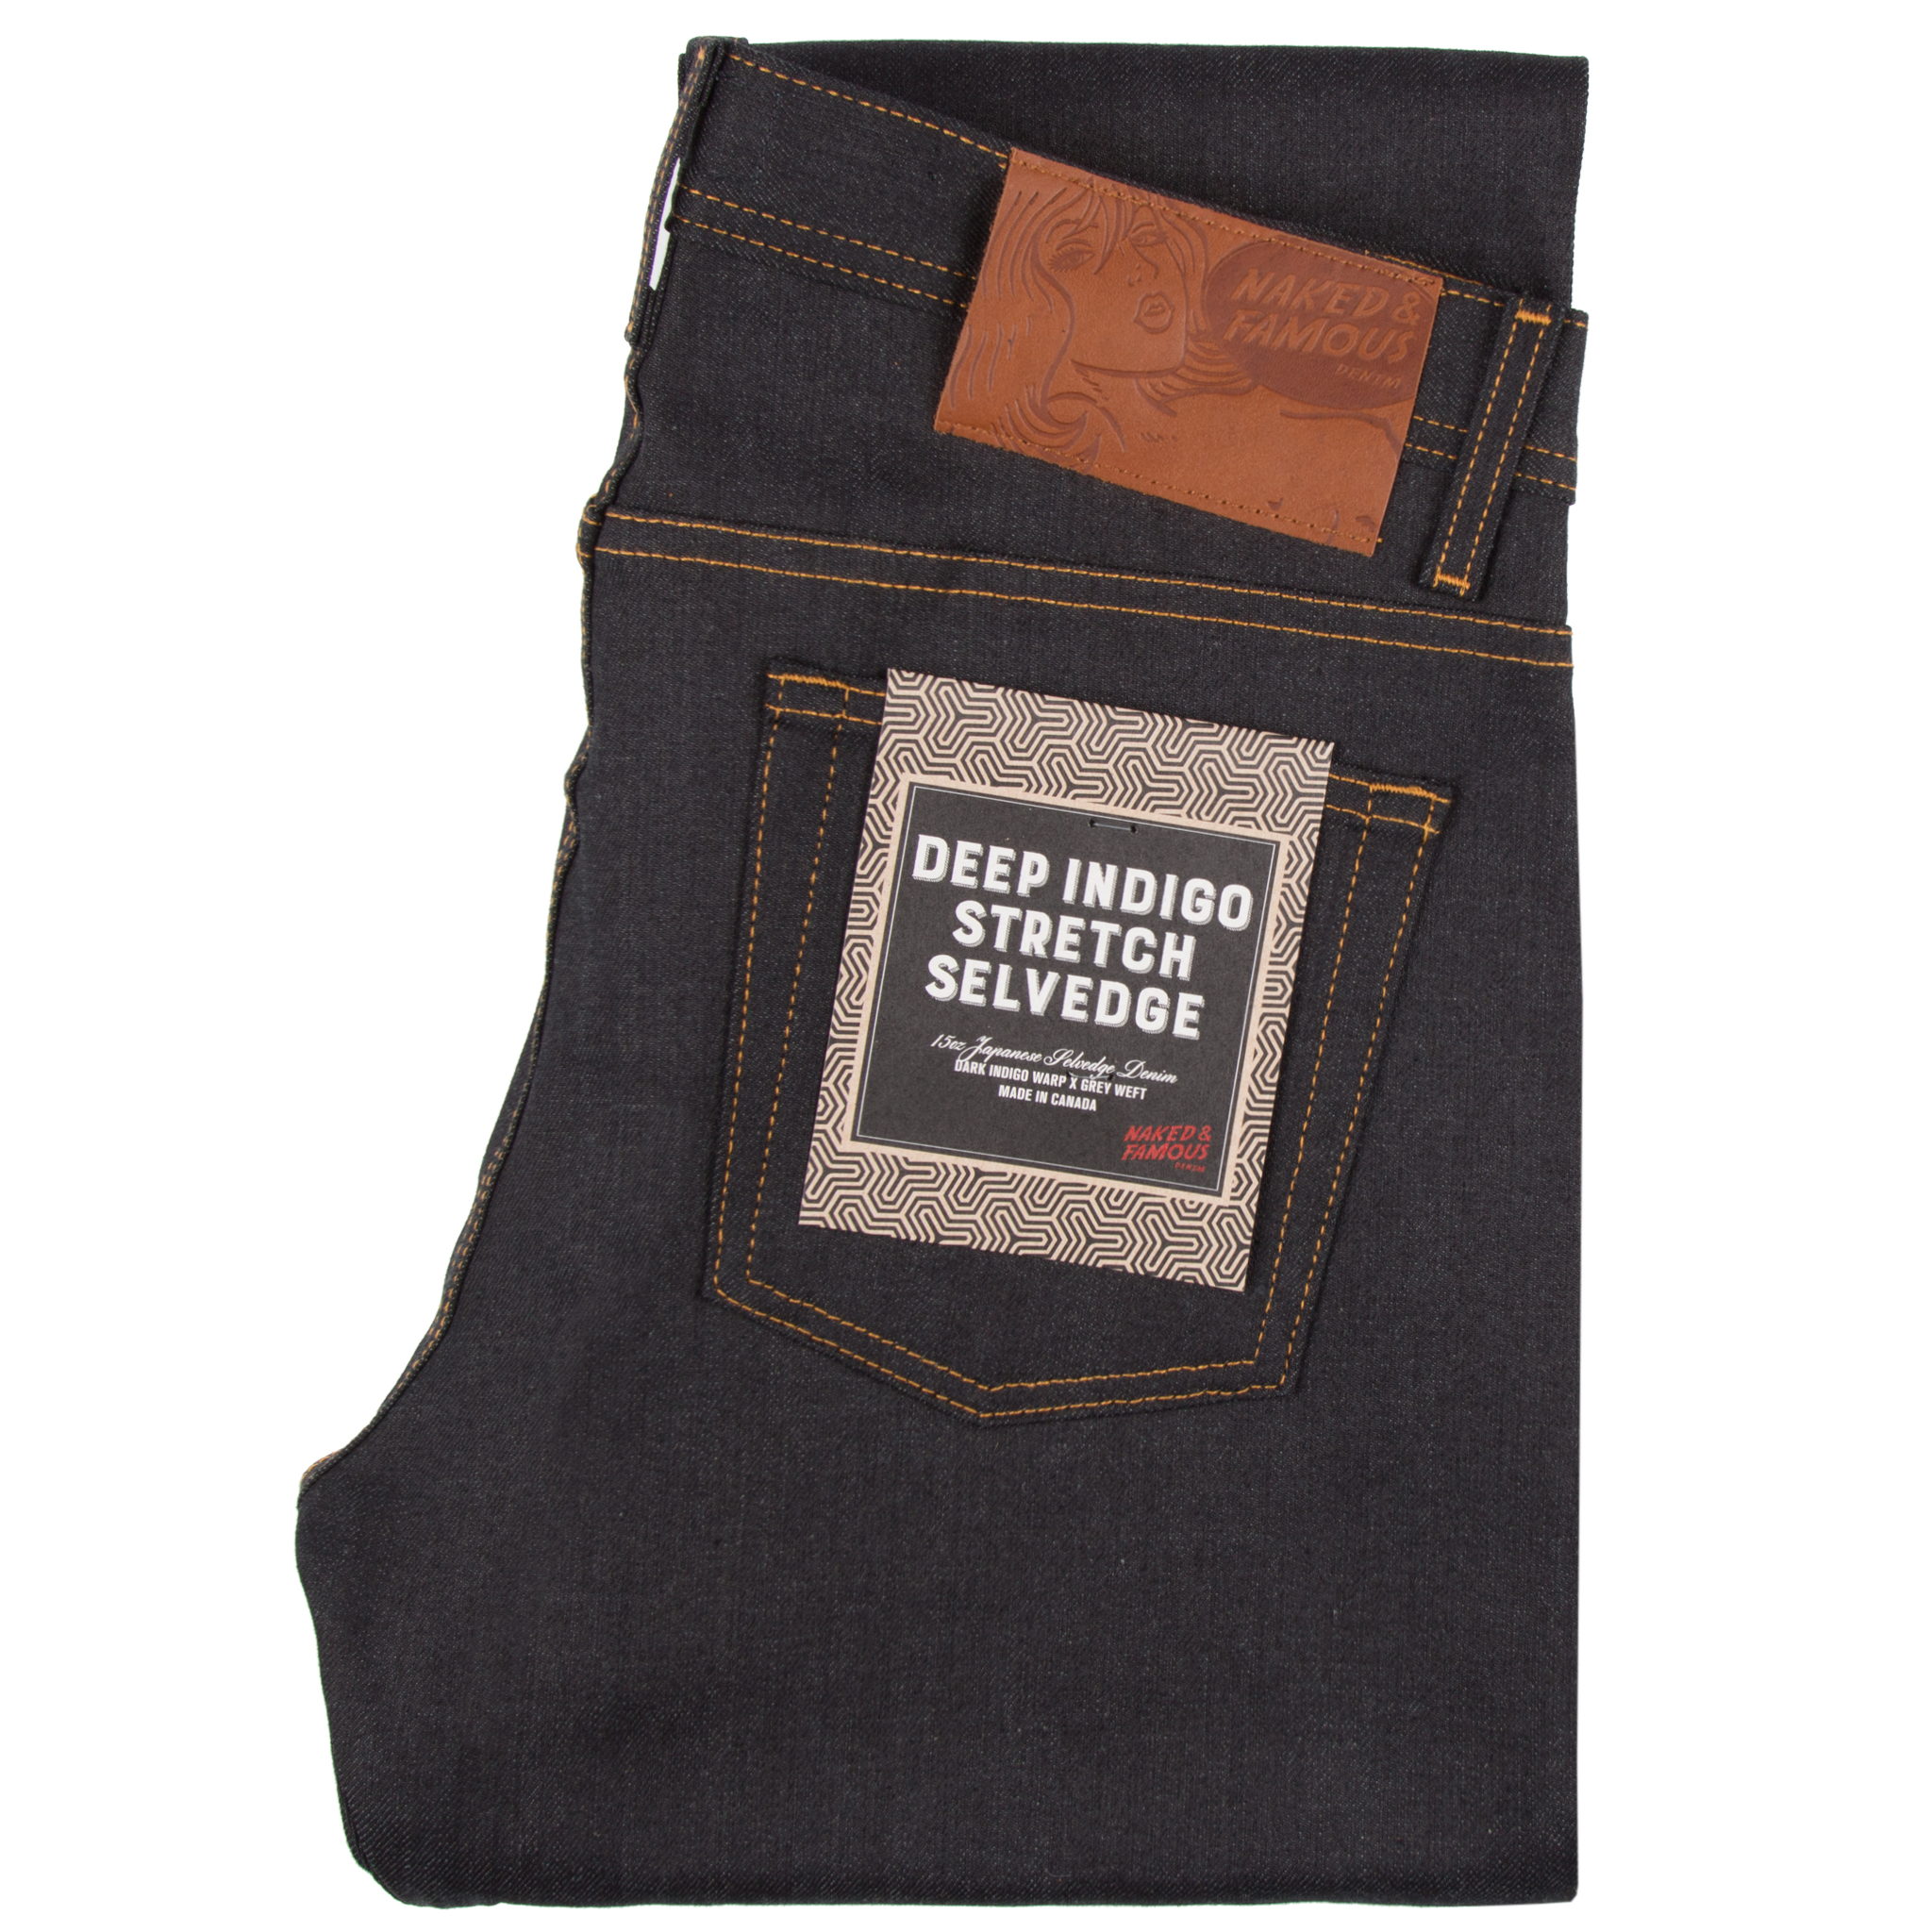 deep indigo stretch selvedge - Super Guy / Weird Guy / Easy Guy